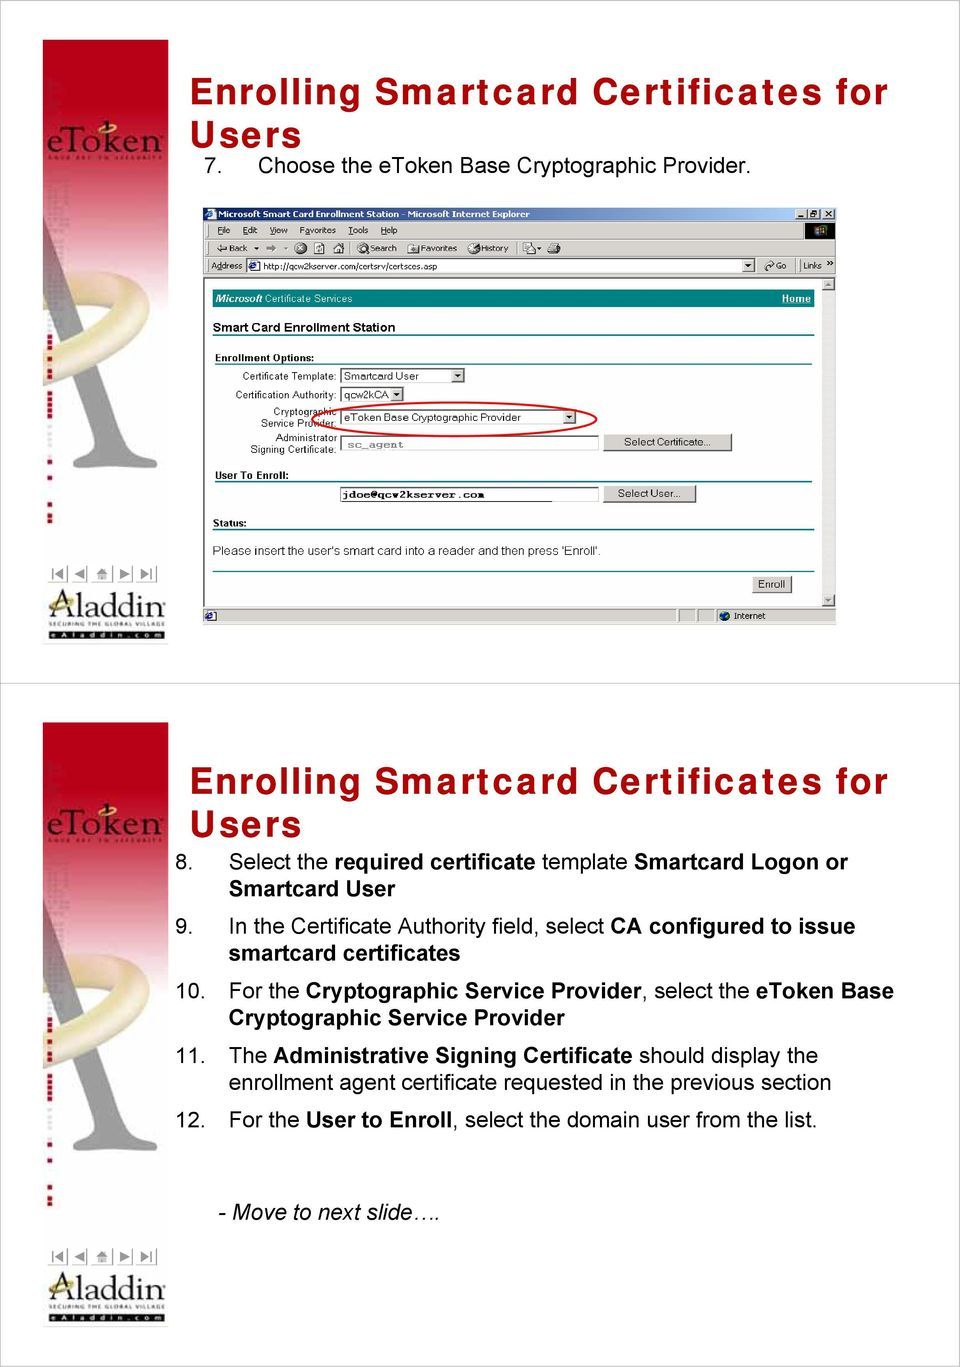 In the Certificate Authority field, select CA configured to issue smartcard certificates 10.